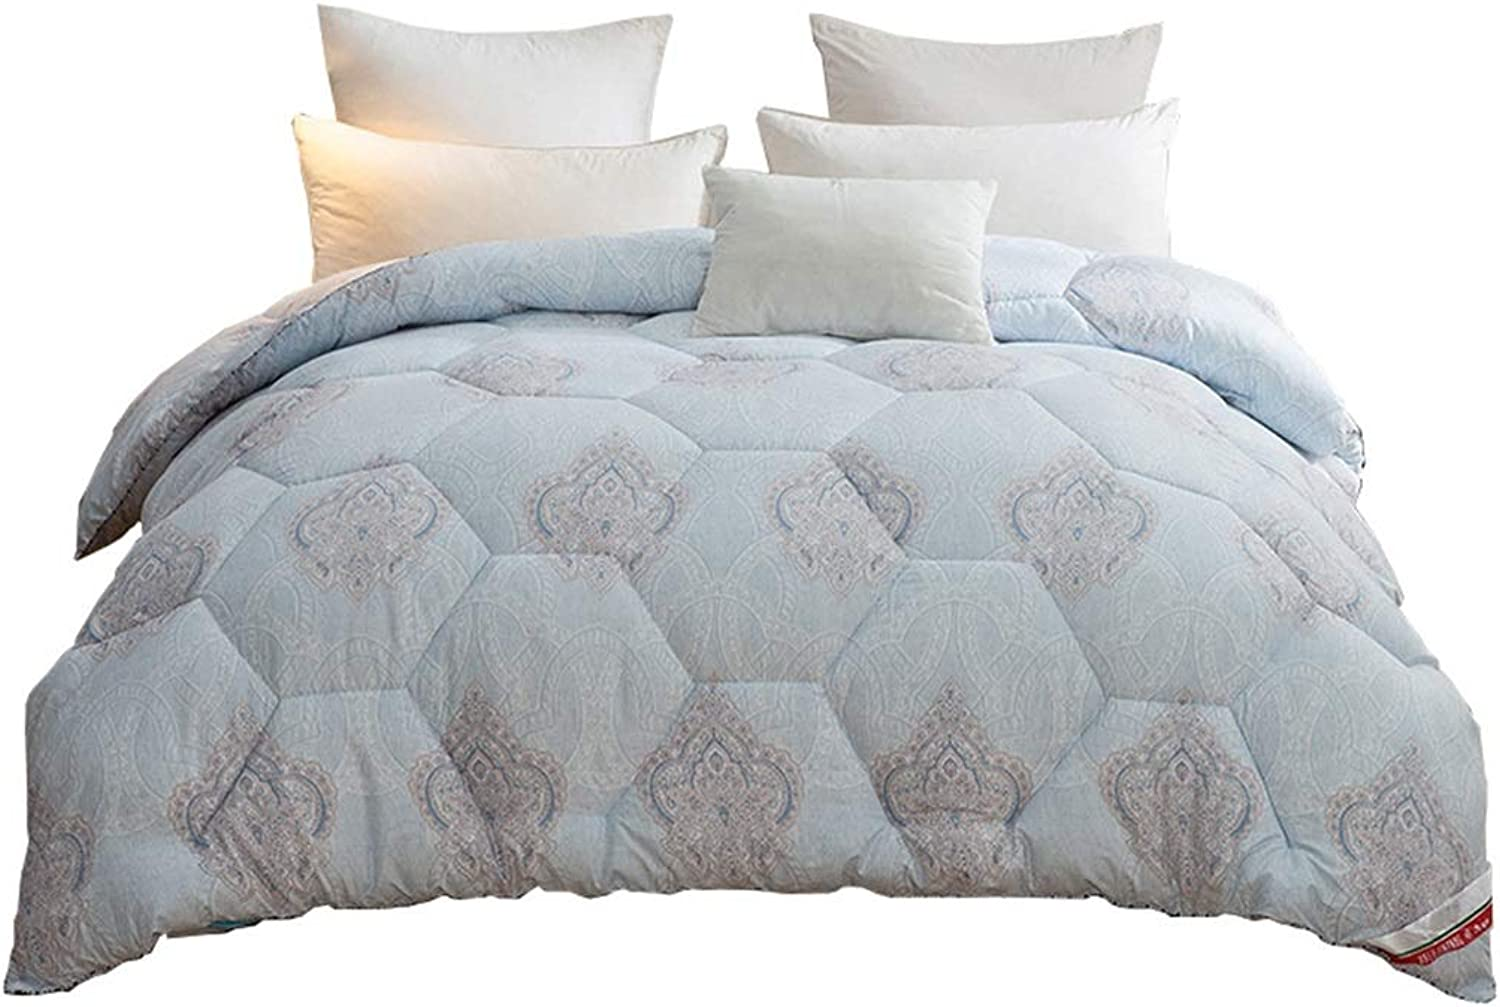 Quilt Thicken Warm and Soft for All Season All-Season Quilted Comforte Rhypoallergenic 100% Cotton Fabrics Quilted Comforter with Corner Tabs (Size   200cmX230cm 2kg)